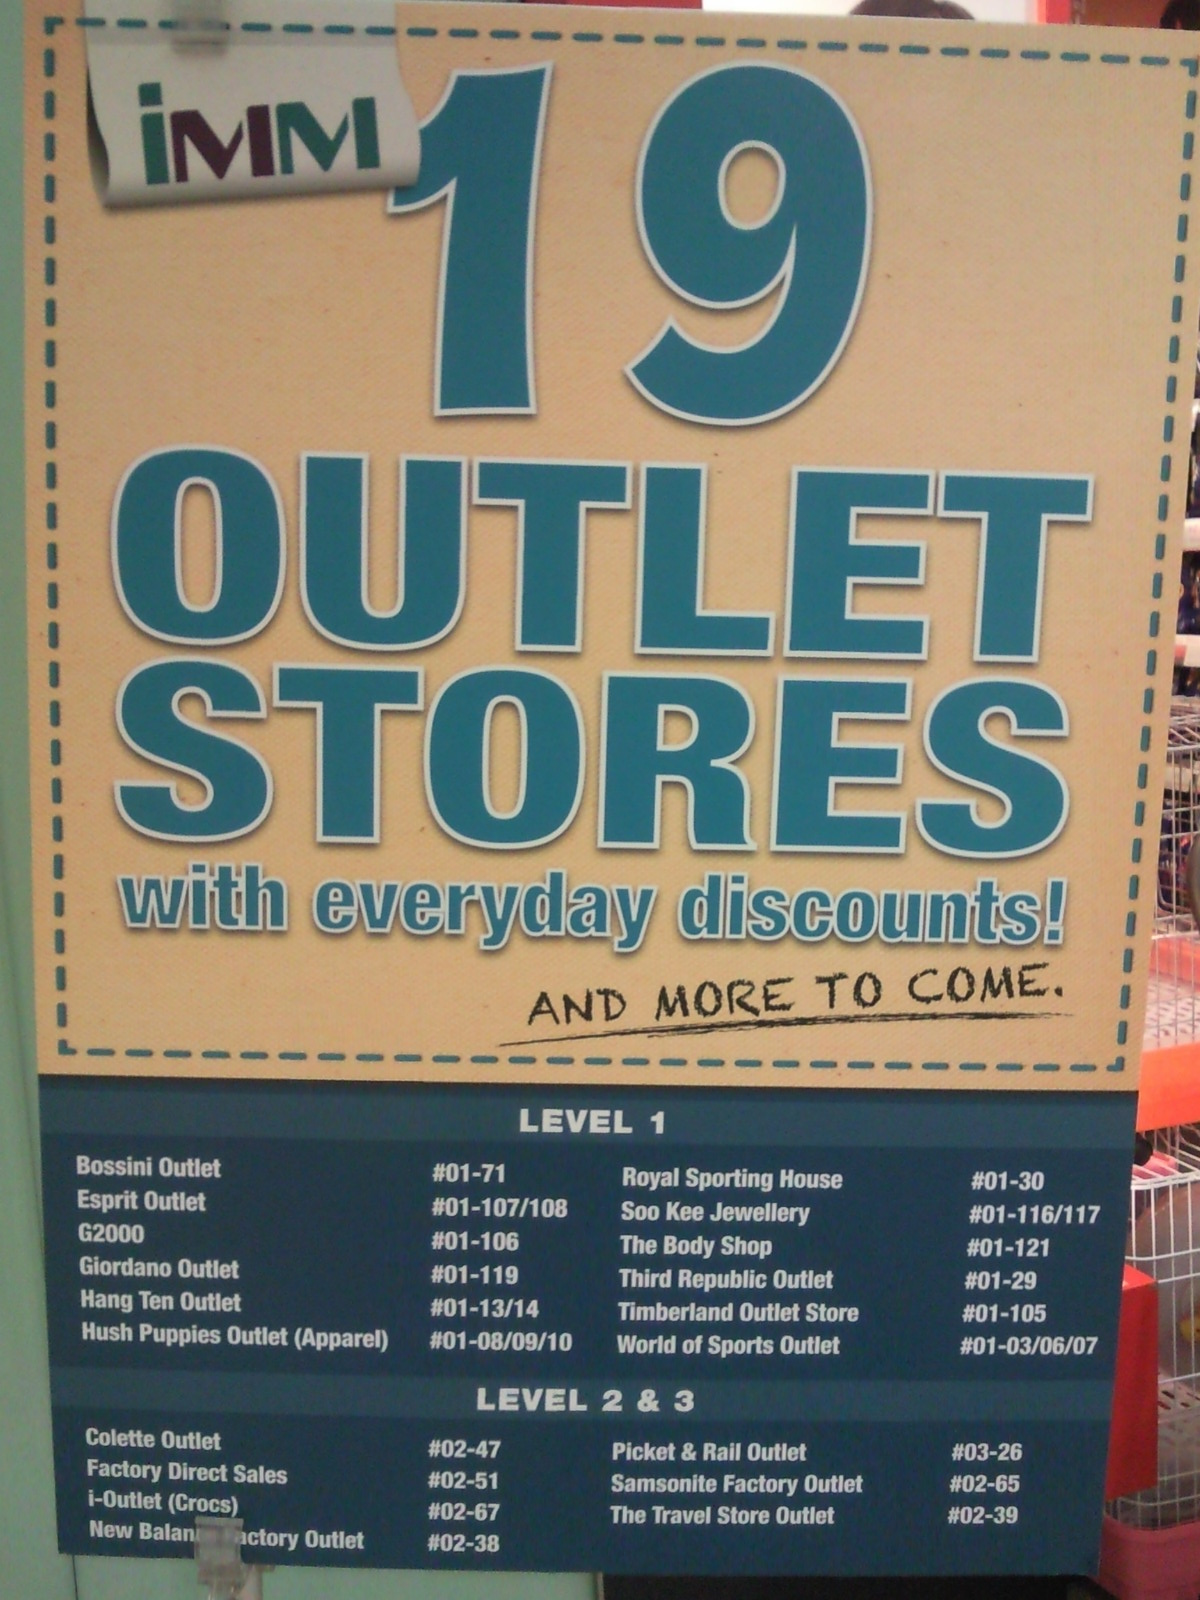 Flyers Advertising: IMM 19 Outlet Stores With Everyday